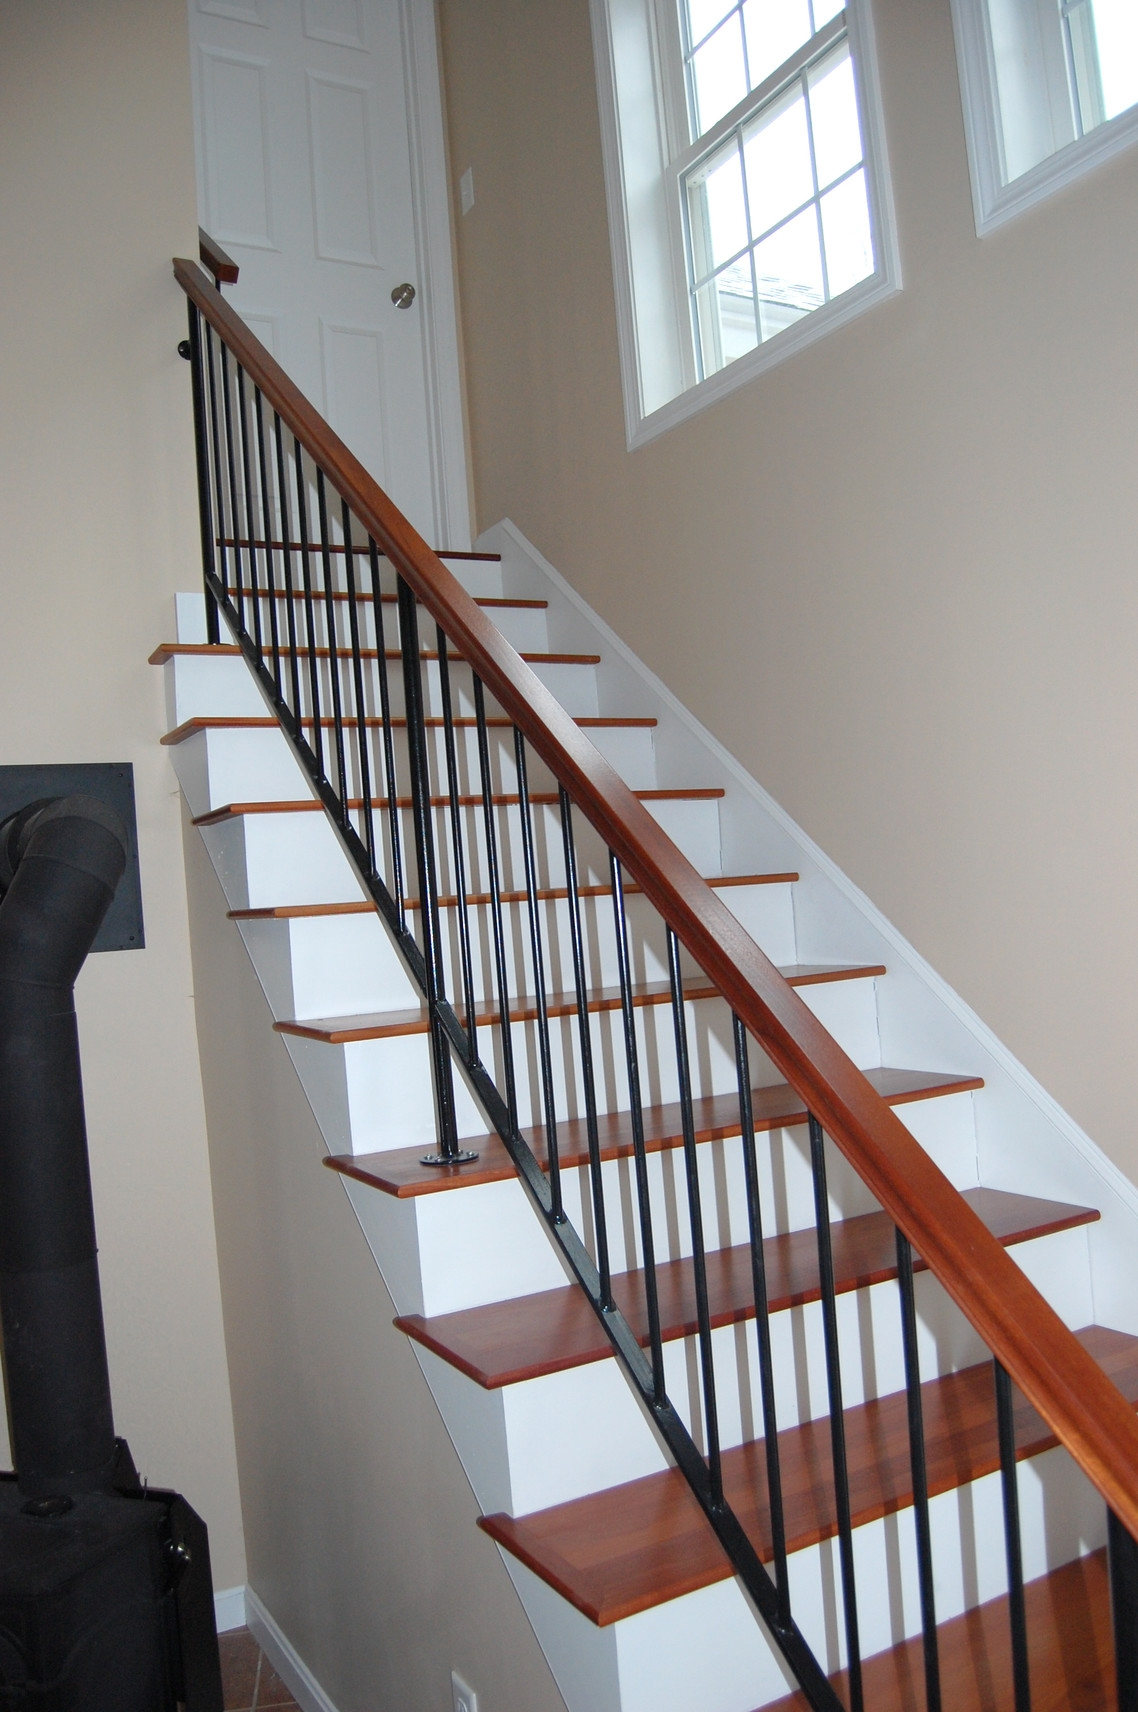 Custom Iron Railings Wrought Iron Railings Mill City Iron   Metal Railing With Wood Handrail   Cable Railing   Wrought Iron Balusters   Stainless Steel Railing   Deck Railing   Carpeted Stairs